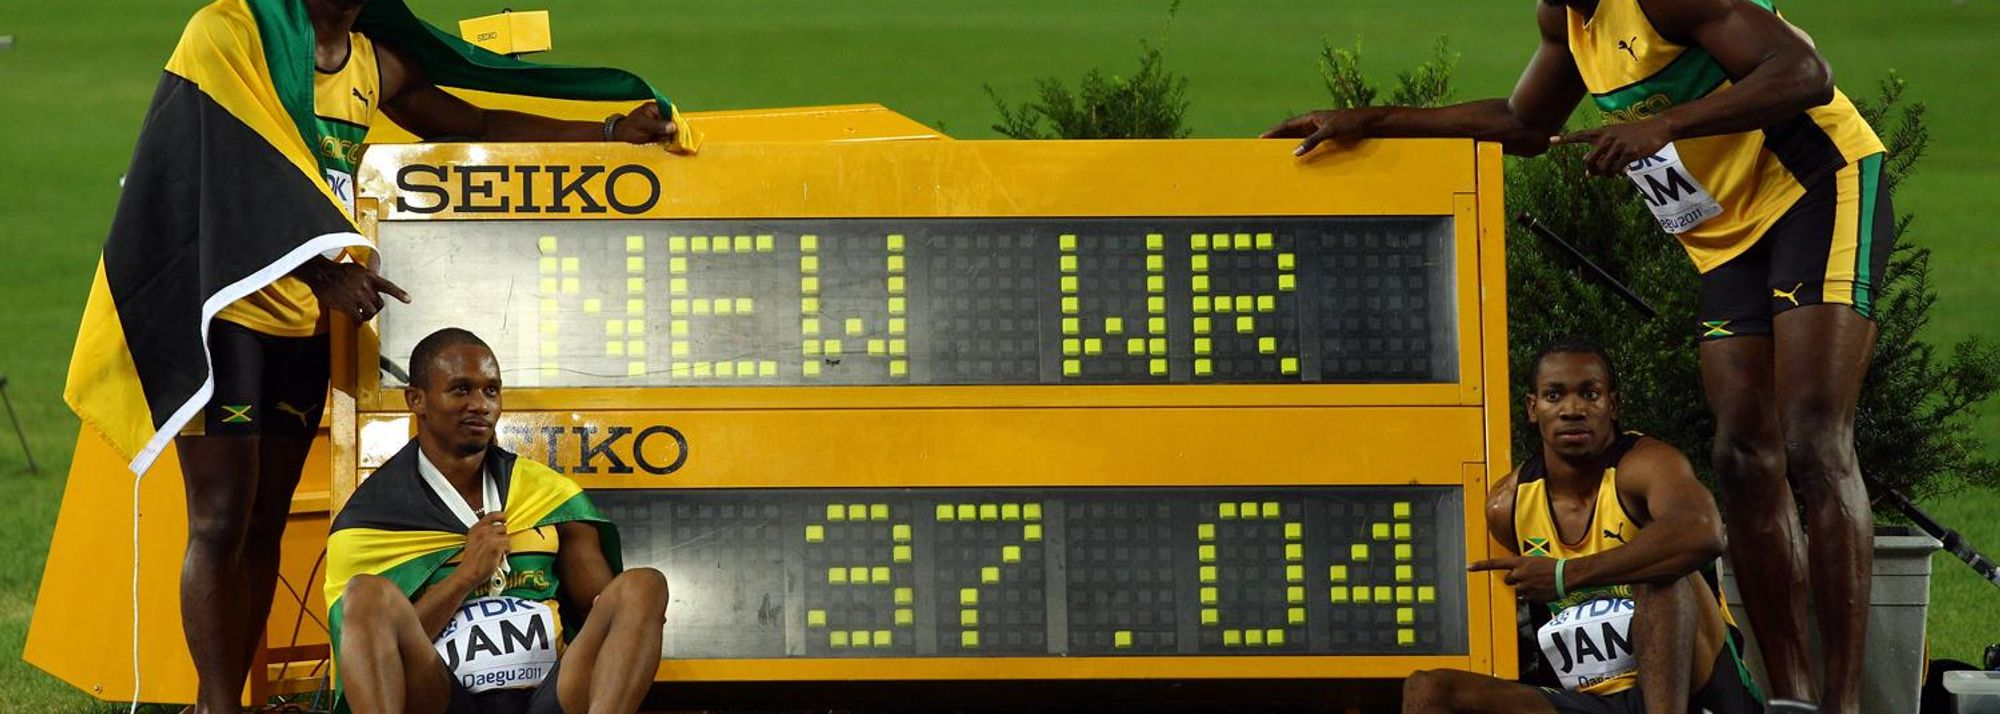 Daegu, Korea – An explosive Jamaican blitz descended upon Daegu Stadium on the final day of the 13th edition of the IAAF World Championships as a quartet from the Caribbean sprinting powerhouse broke the World record in the men's 4x100m Relay.